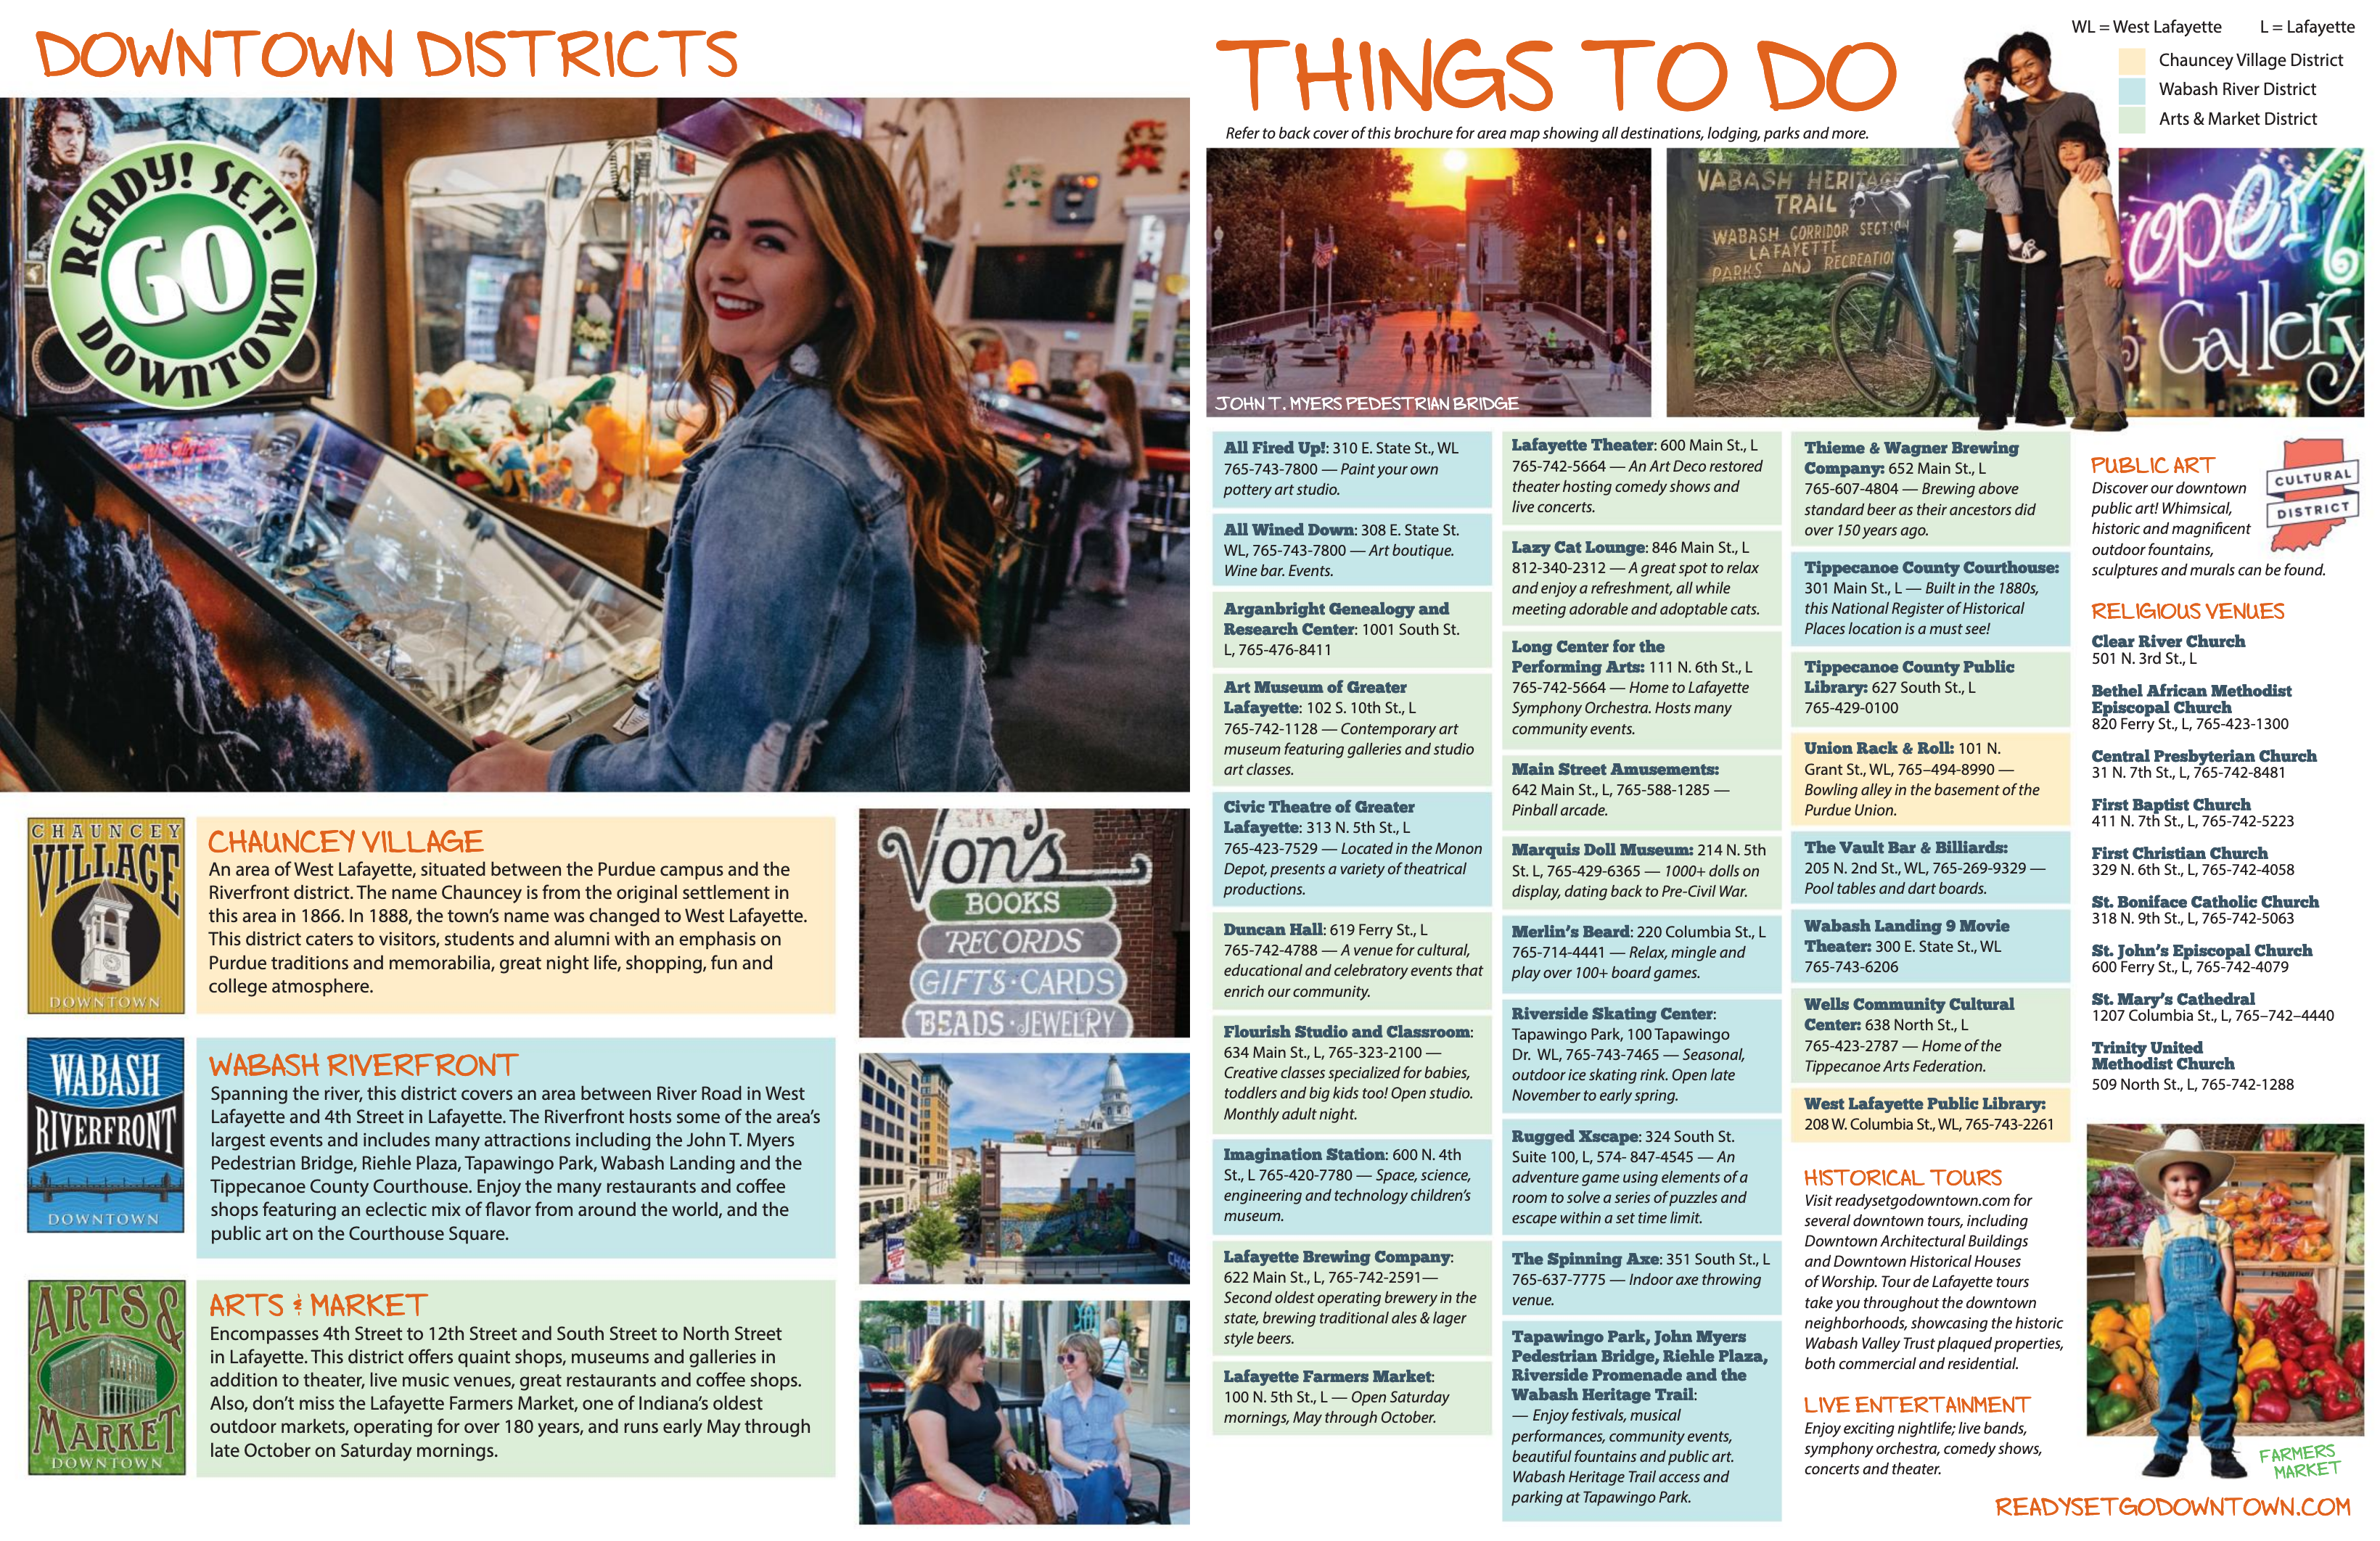 2021 Spring Downtown Guide